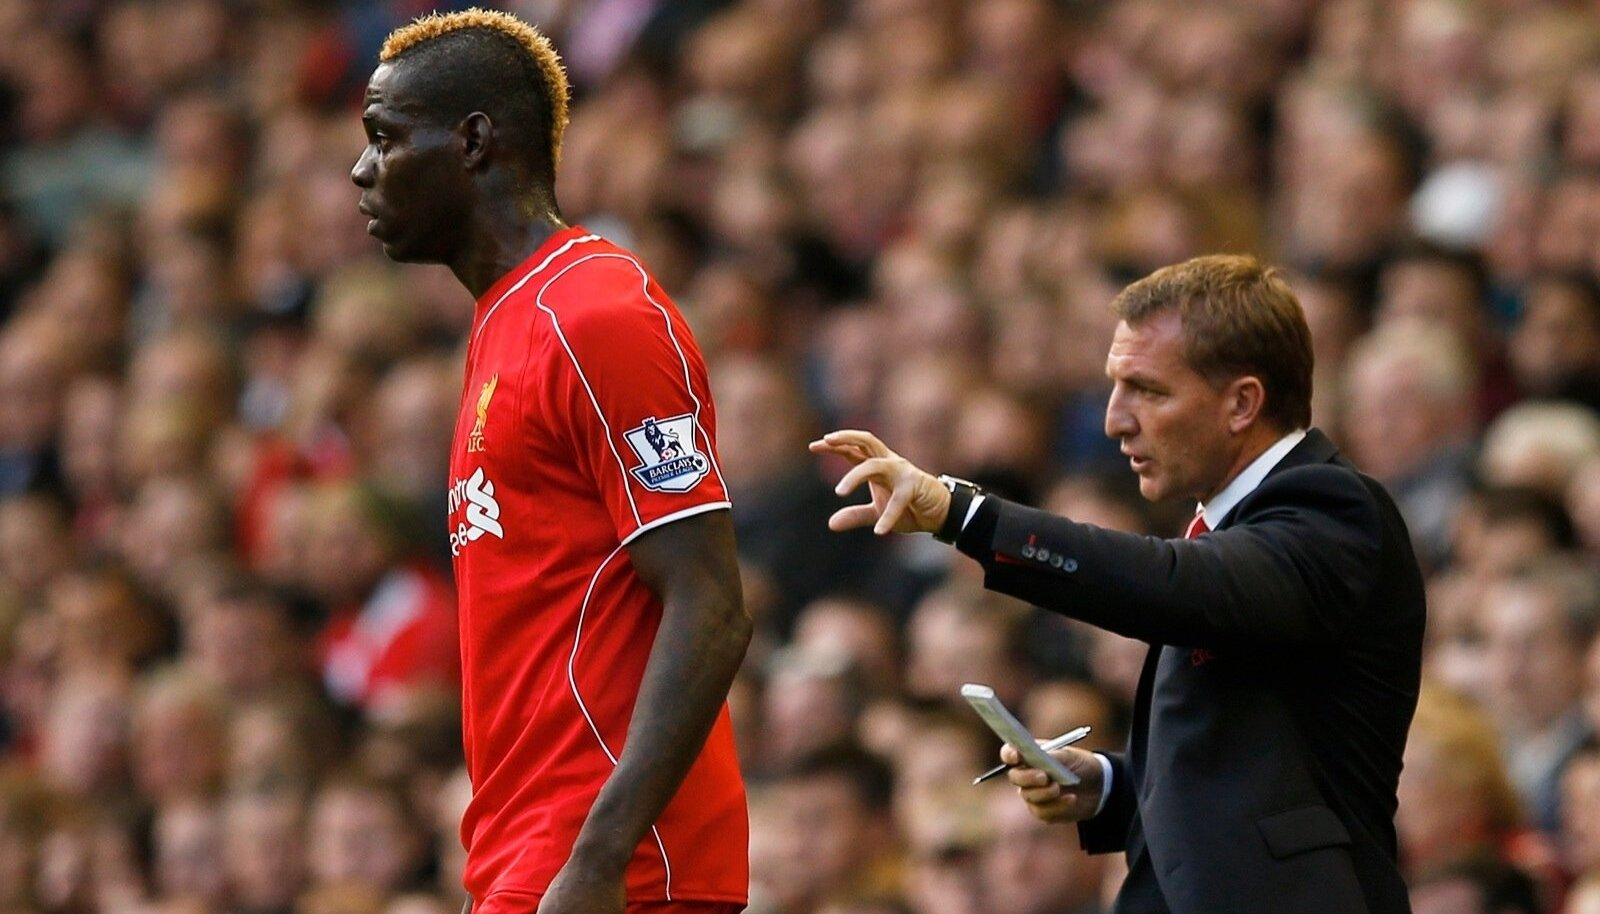 Liverpool's Mario Balotelli watches play as manager Brendan Rodgers gives instructions during their English Premier League soccer match against Hull City at Anfield in Liverpool